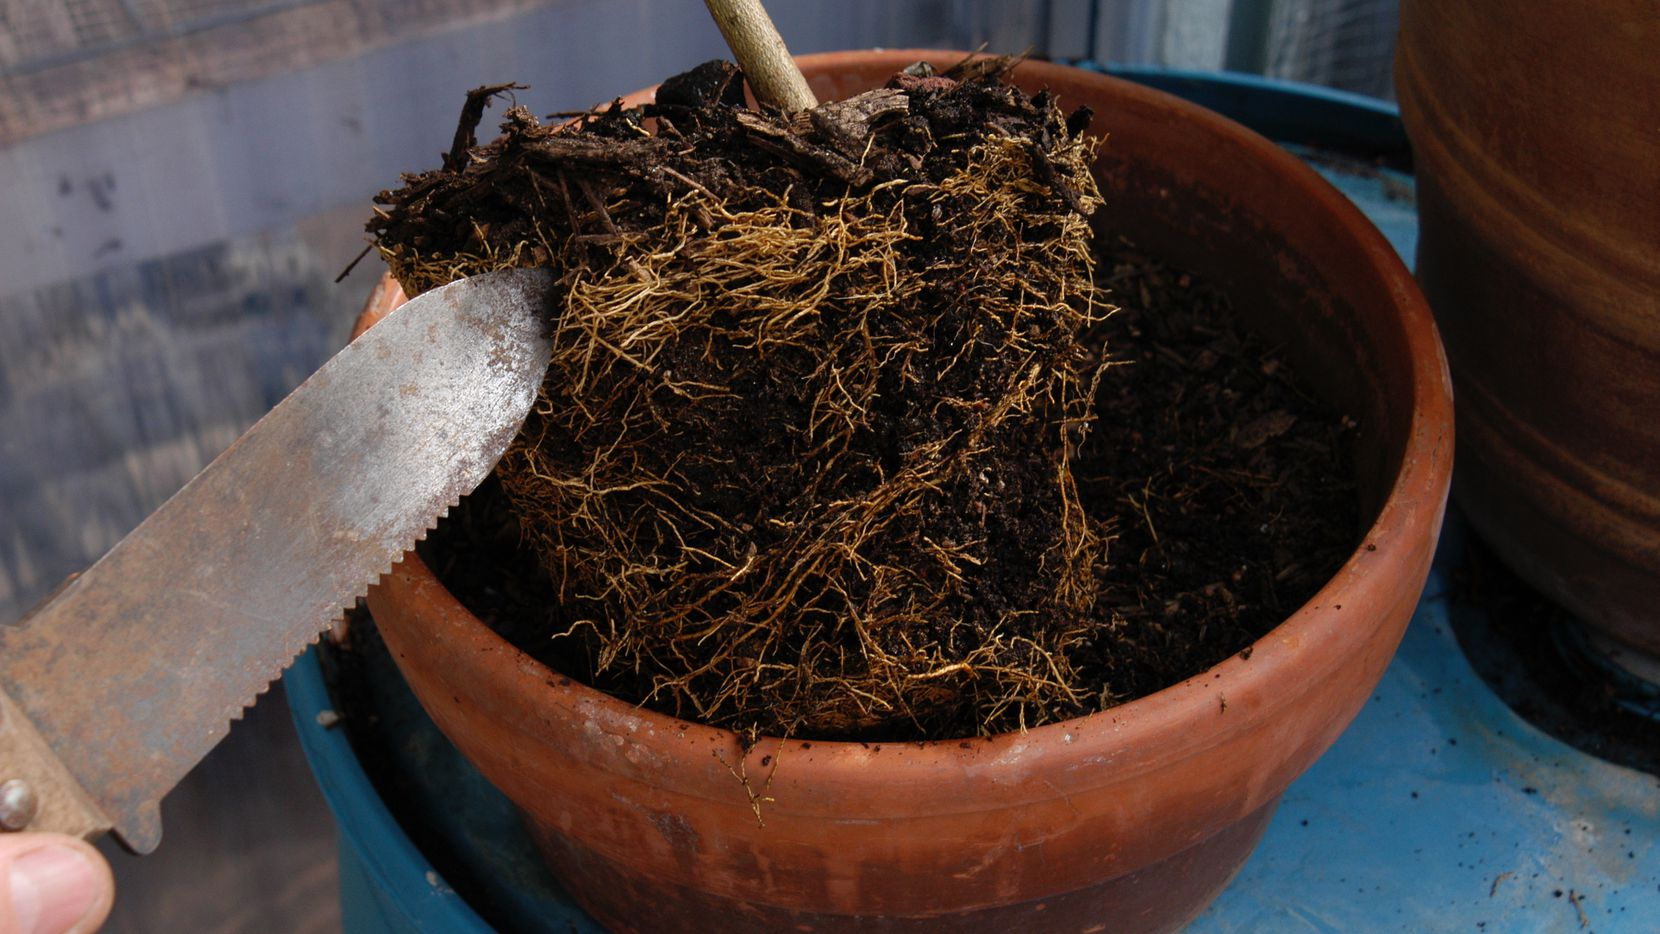 A hori-hori knife can be used to loosen the tightly bound roots of container plants.